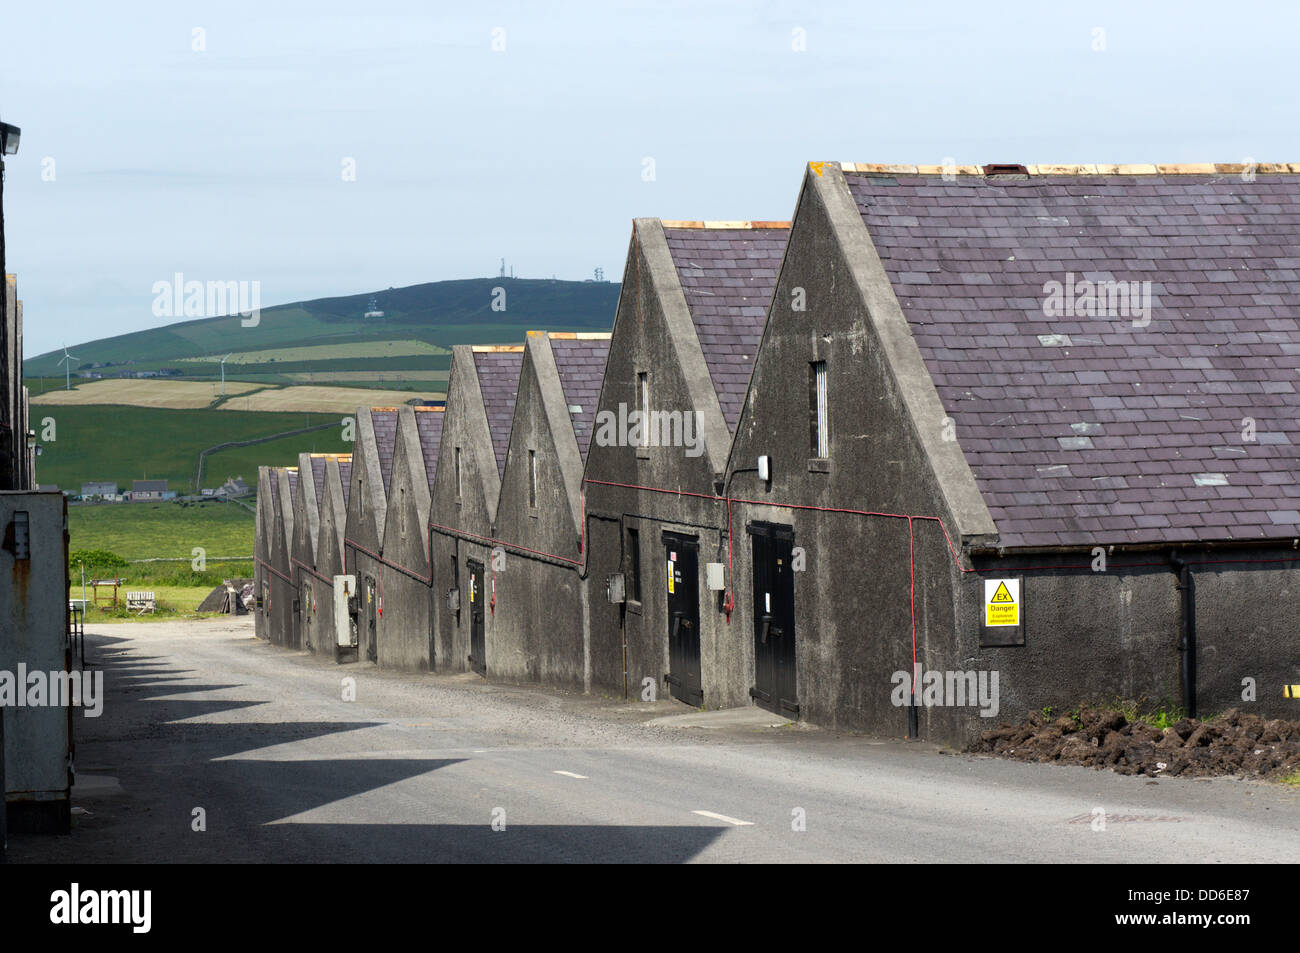 Bonded warehouses at the Highland Park Distillery, Kirkwall, Orkney - Stock Image